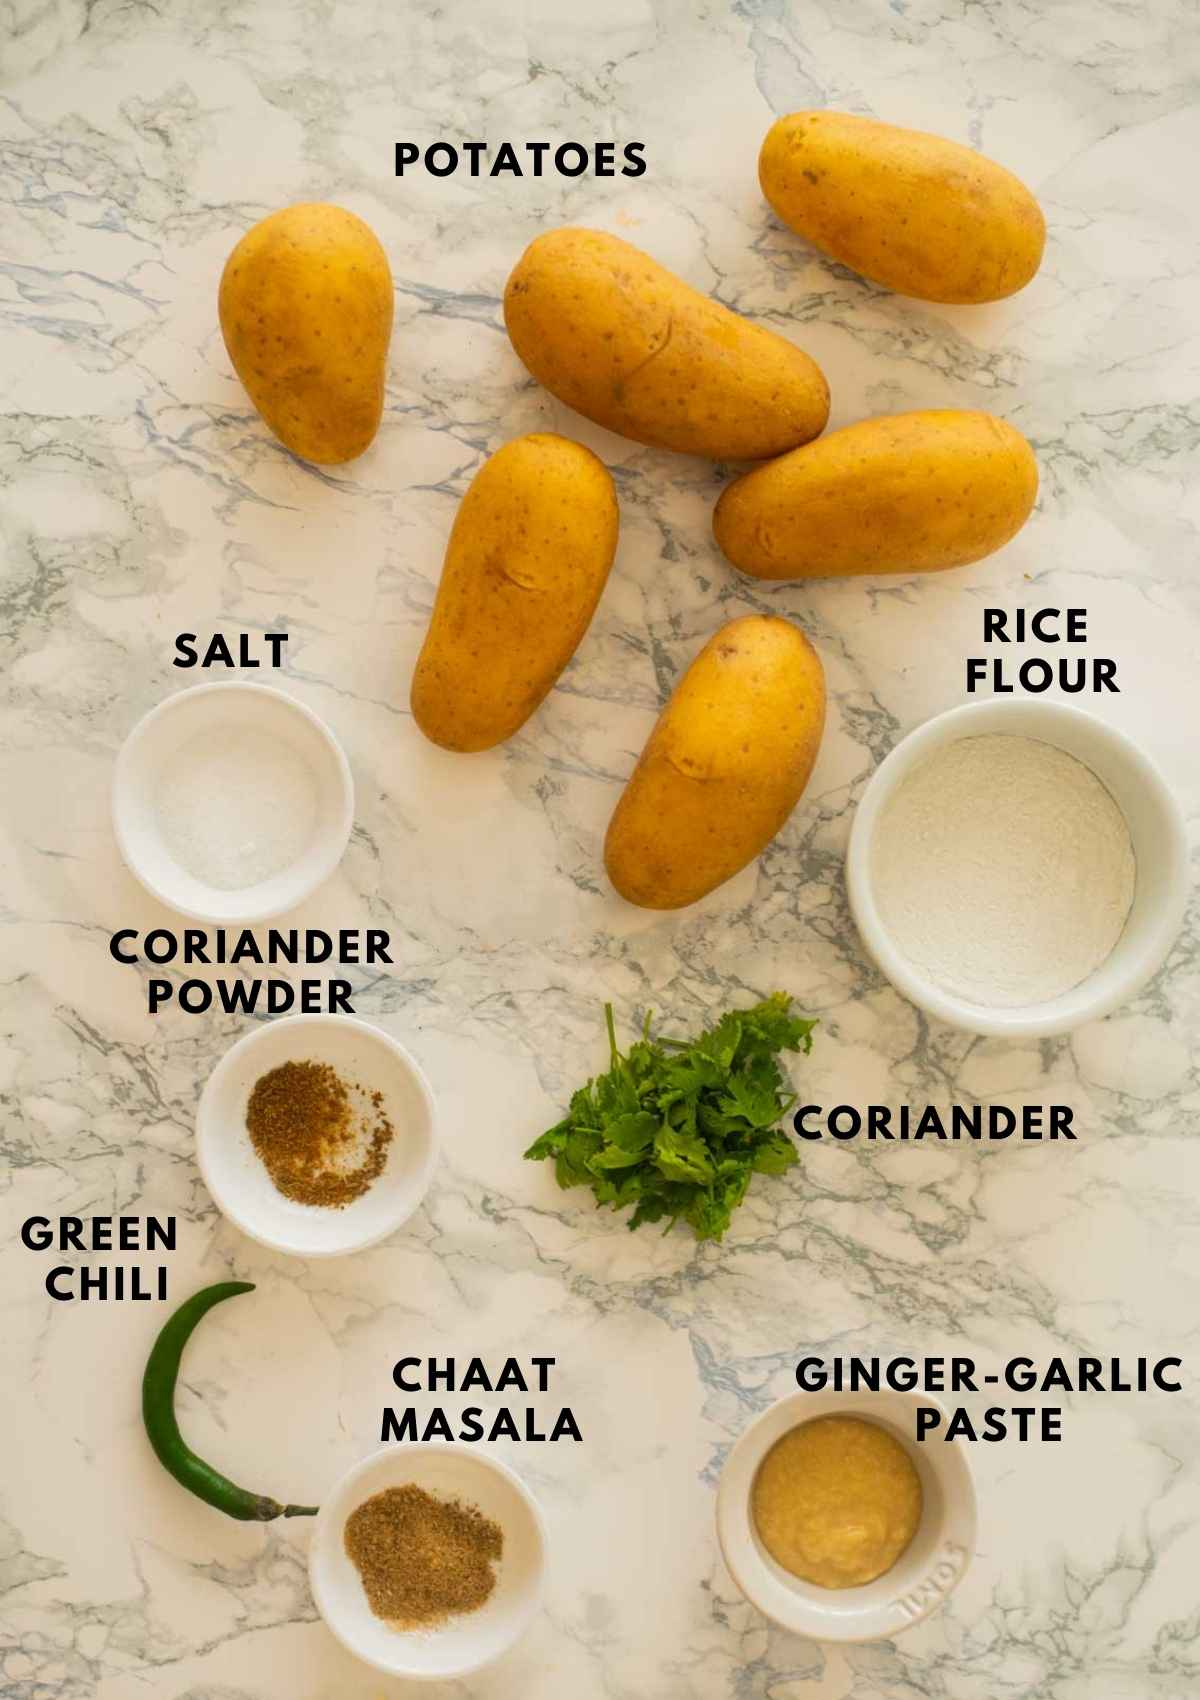 All the ingredients for making aloo tikki placed on a white board